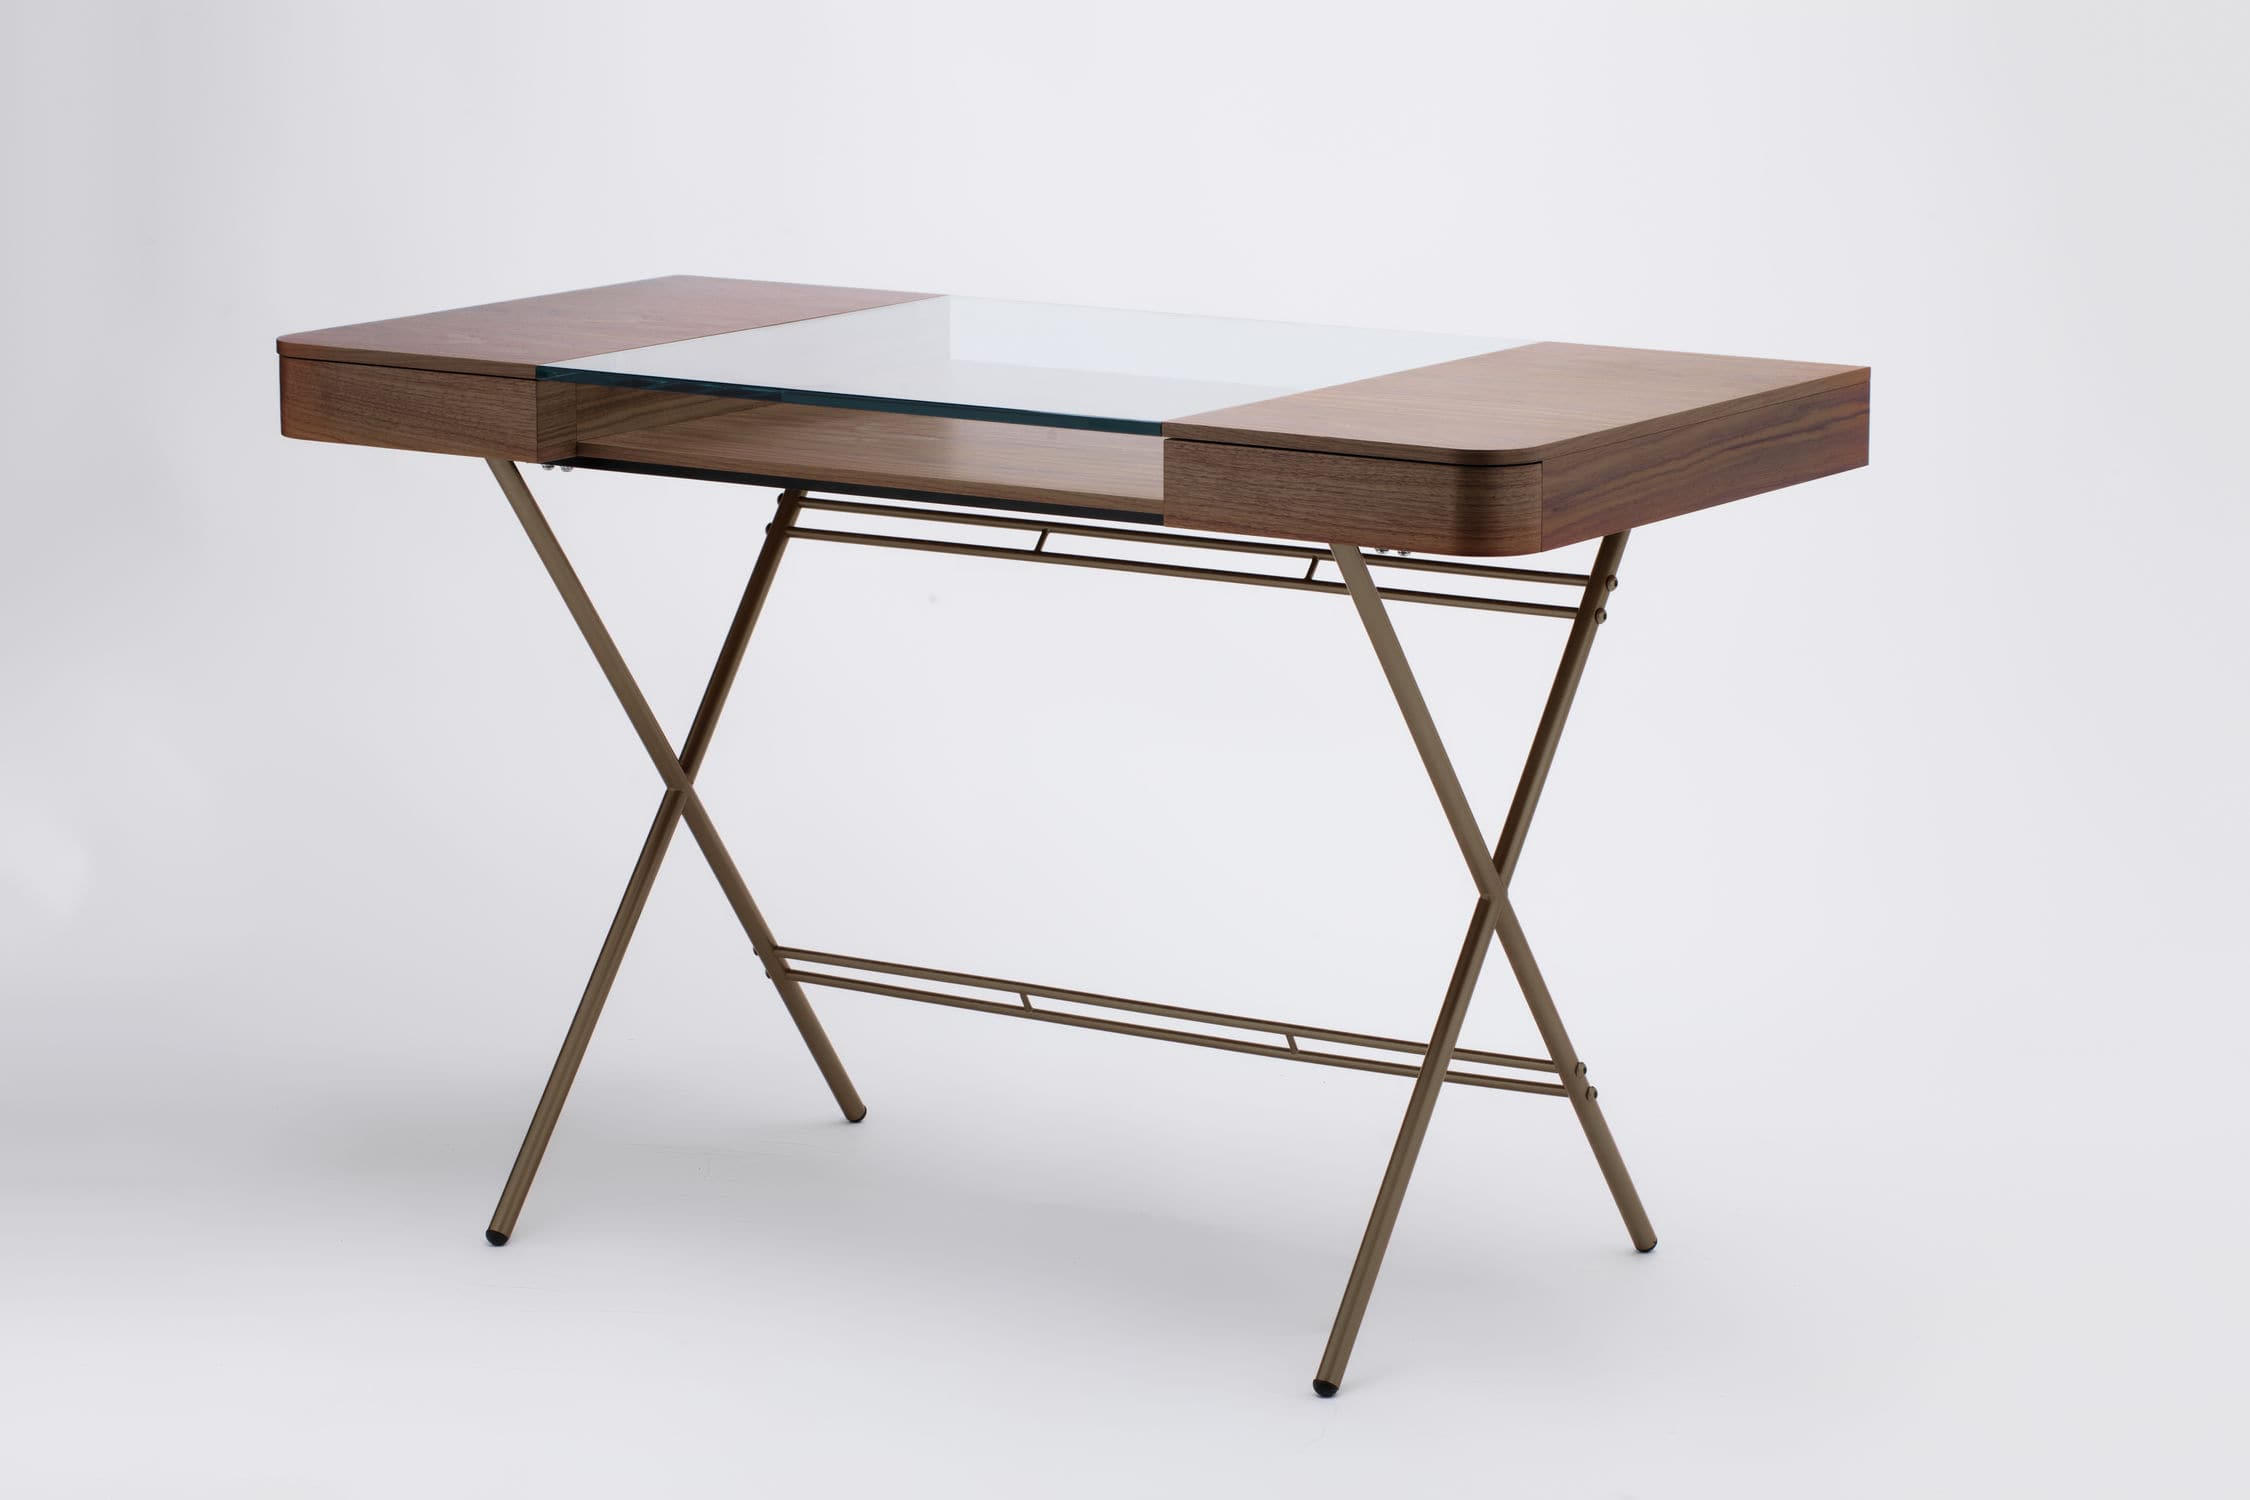 Fine Wood Veneer Desk Mdf Metal Tempered Glass Cosimo By Download Free Architecture Designs Scobabritishbridgeorg